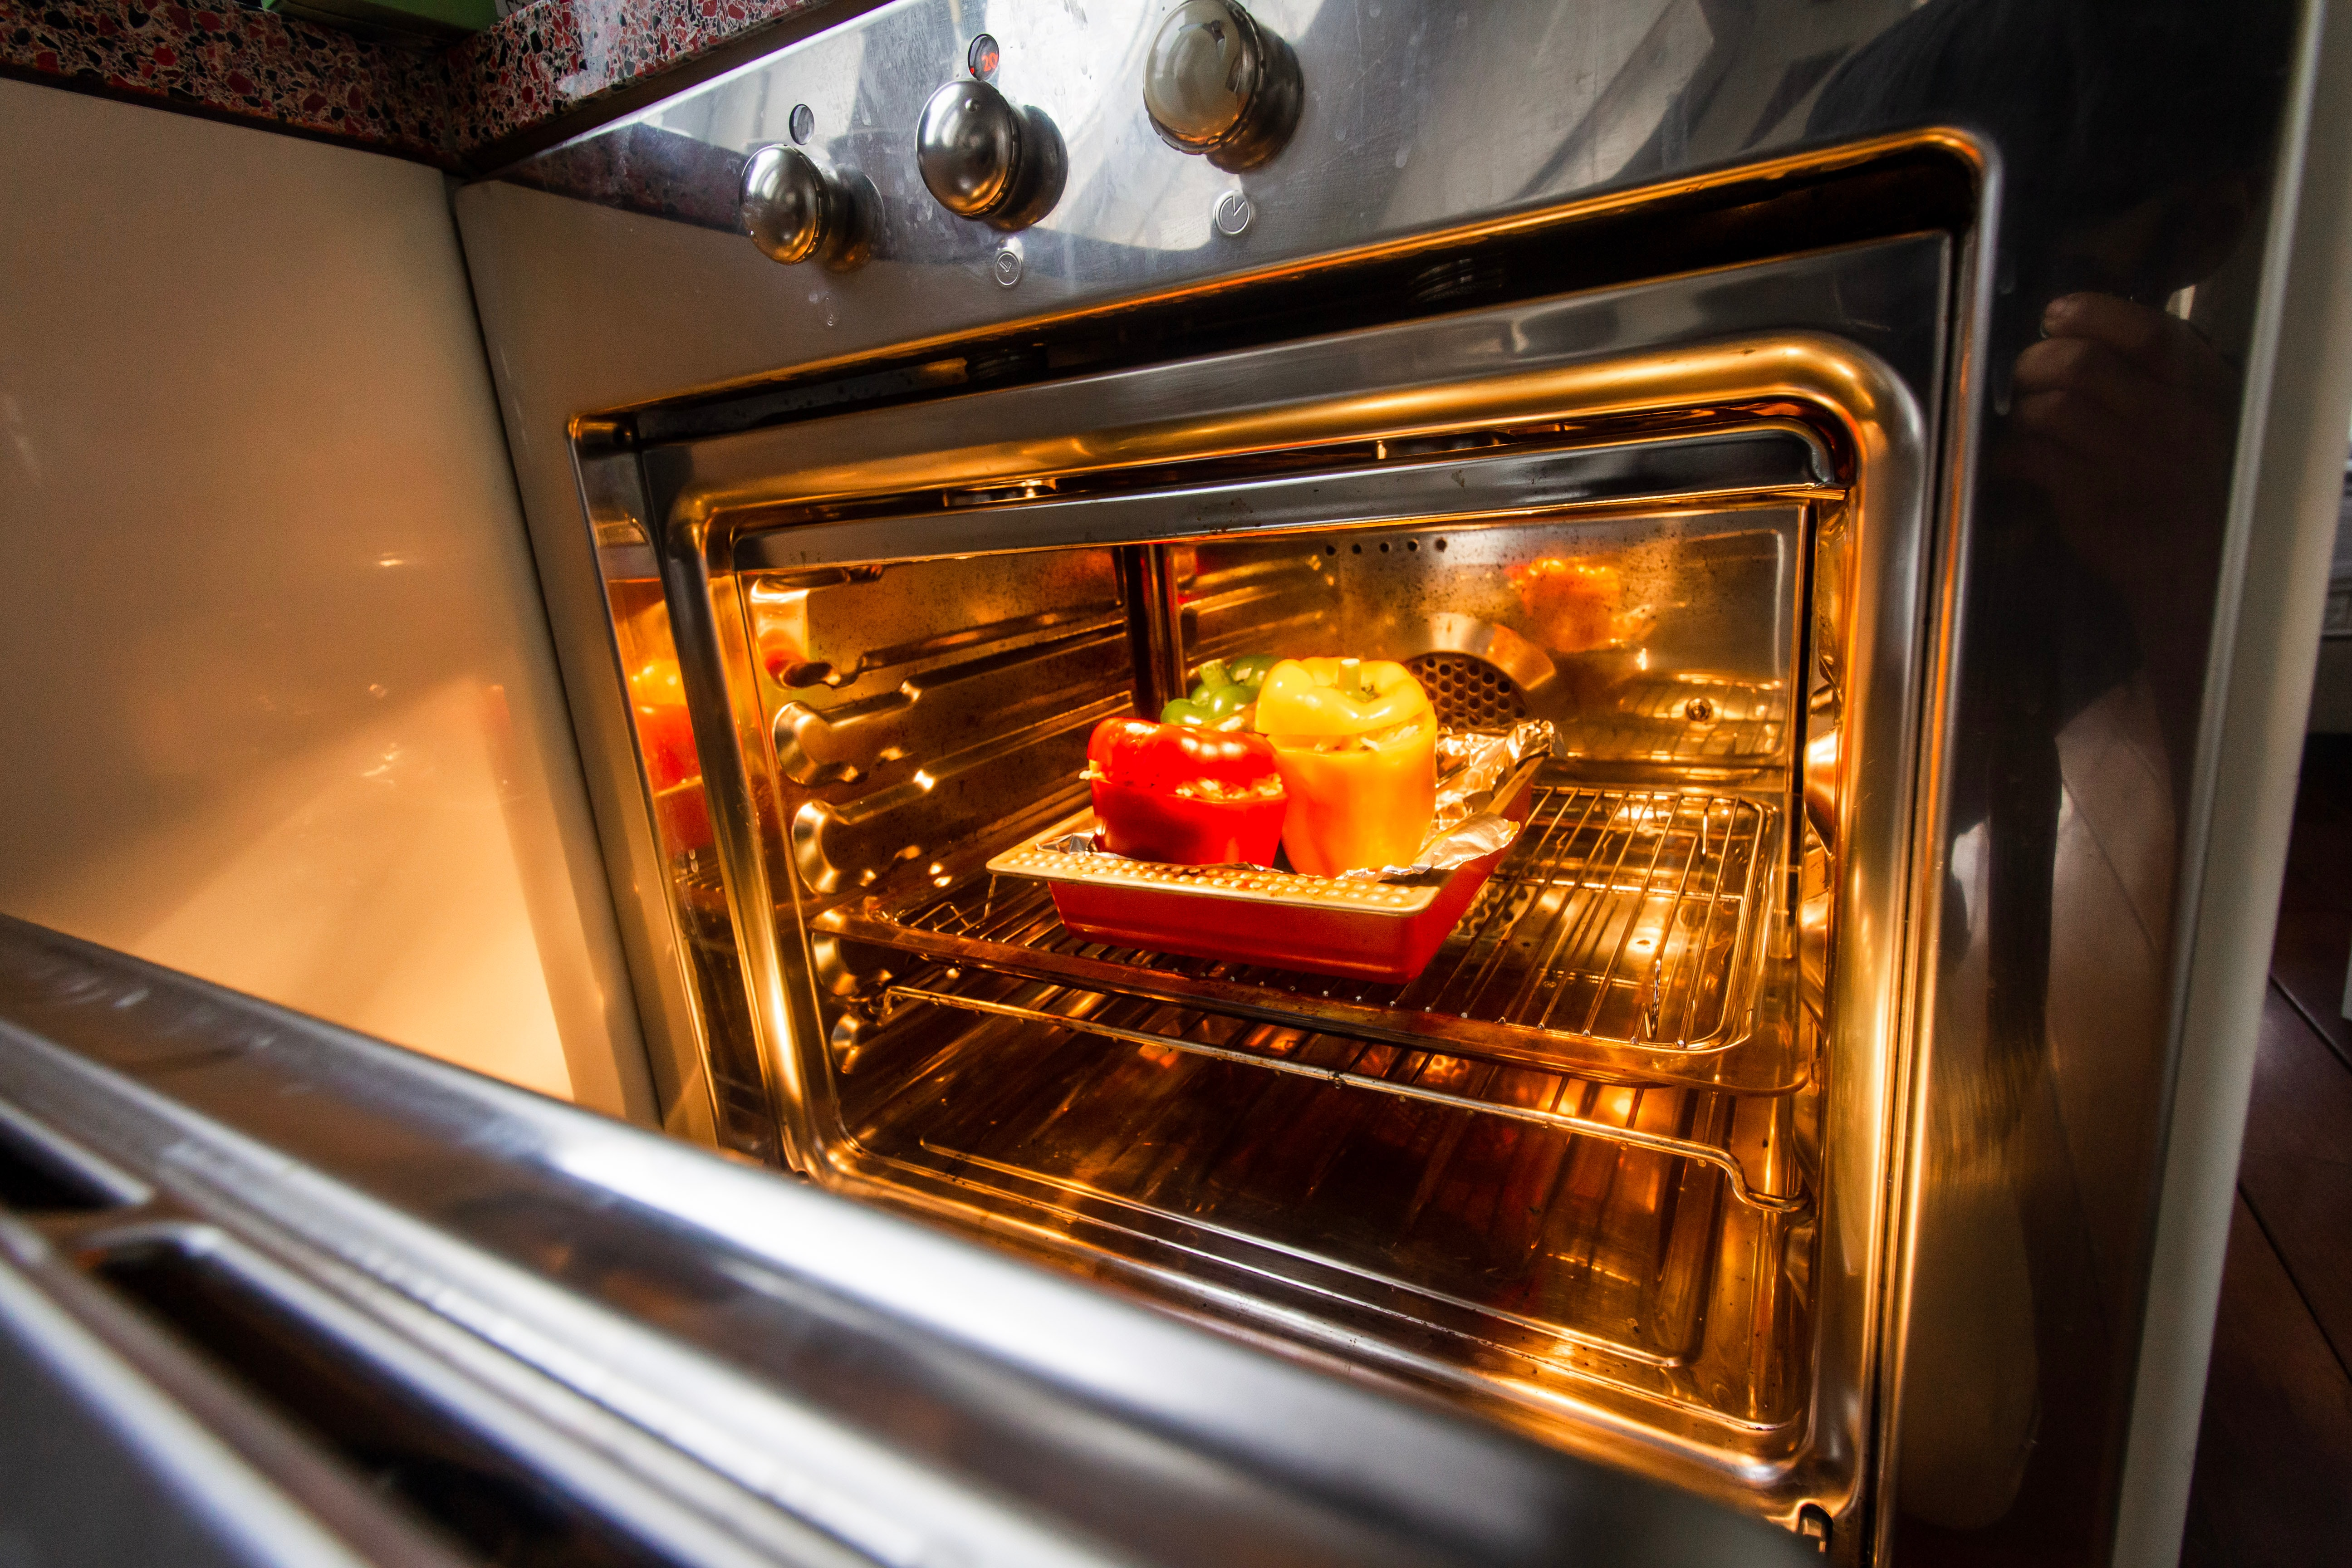 stainless steel oven with food